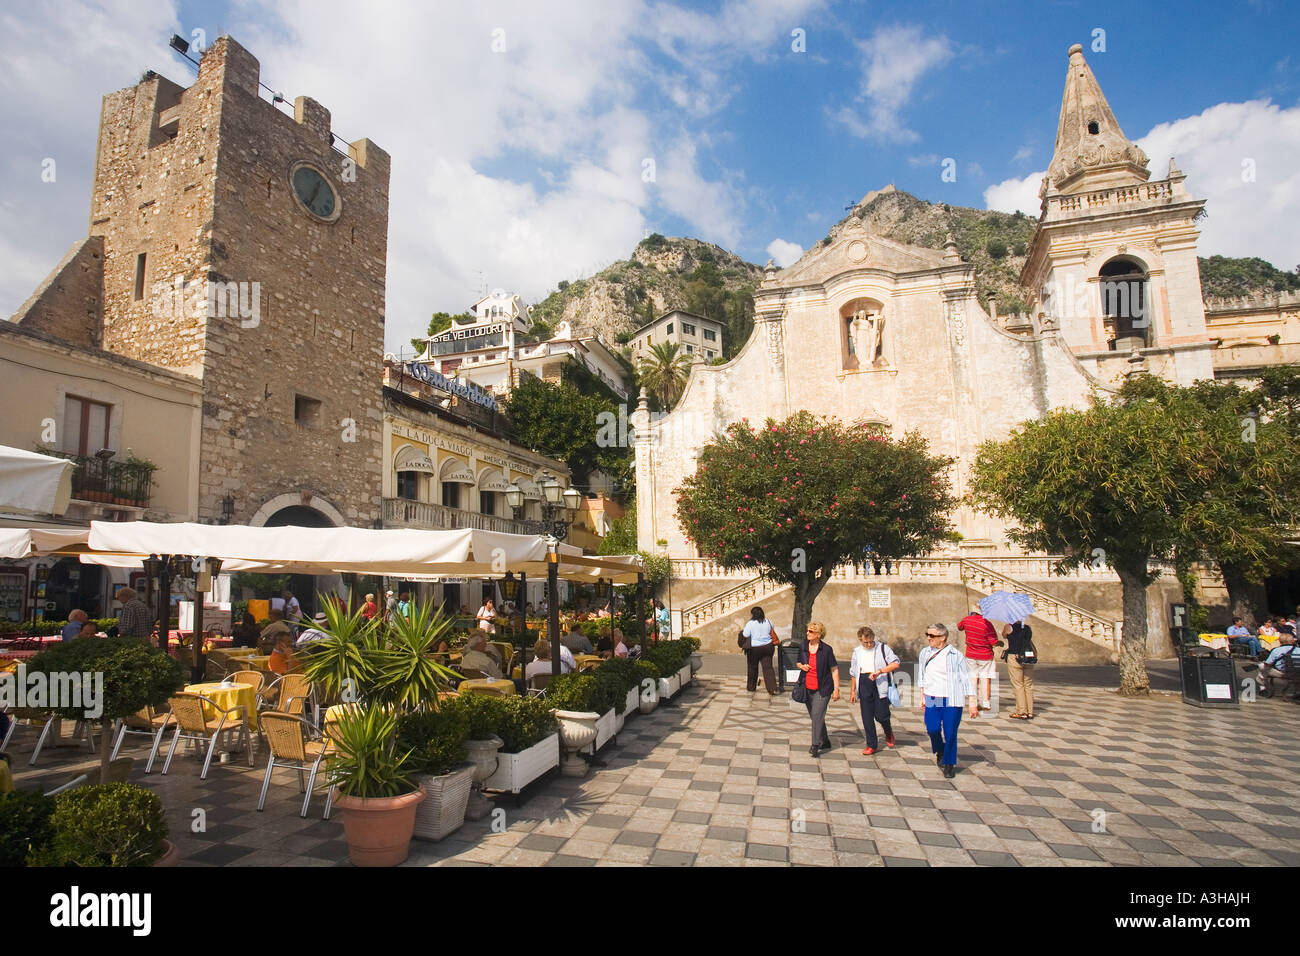 April 9th Square Piazza and  Church of Saint St Augustine with tourists in sun sunshine and pavement cafes Taormina - Stock Image